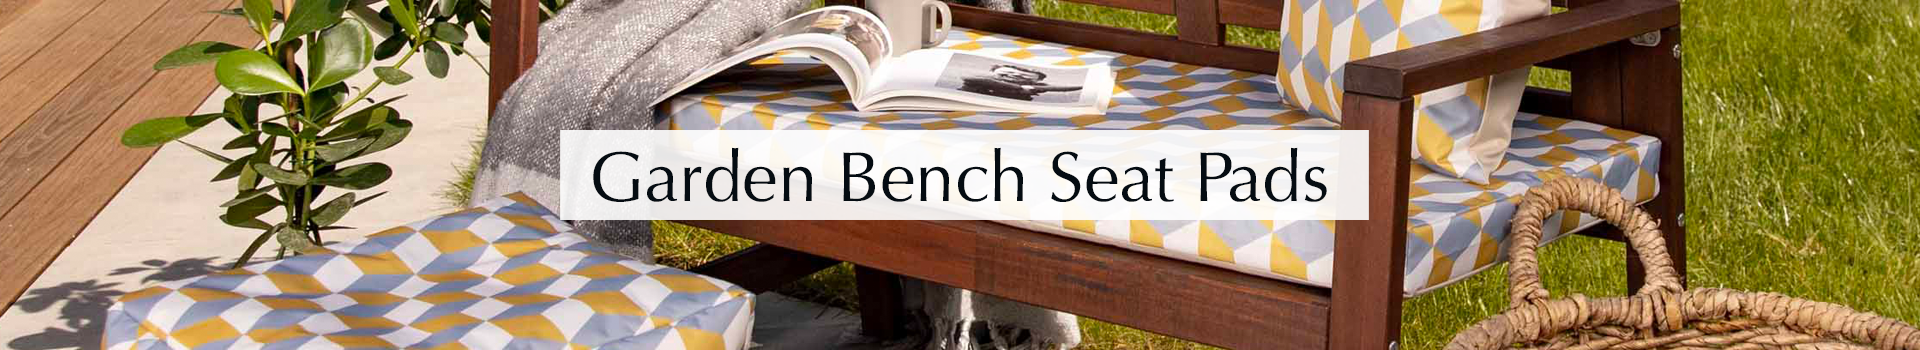 garden-bench-seat-pads.png